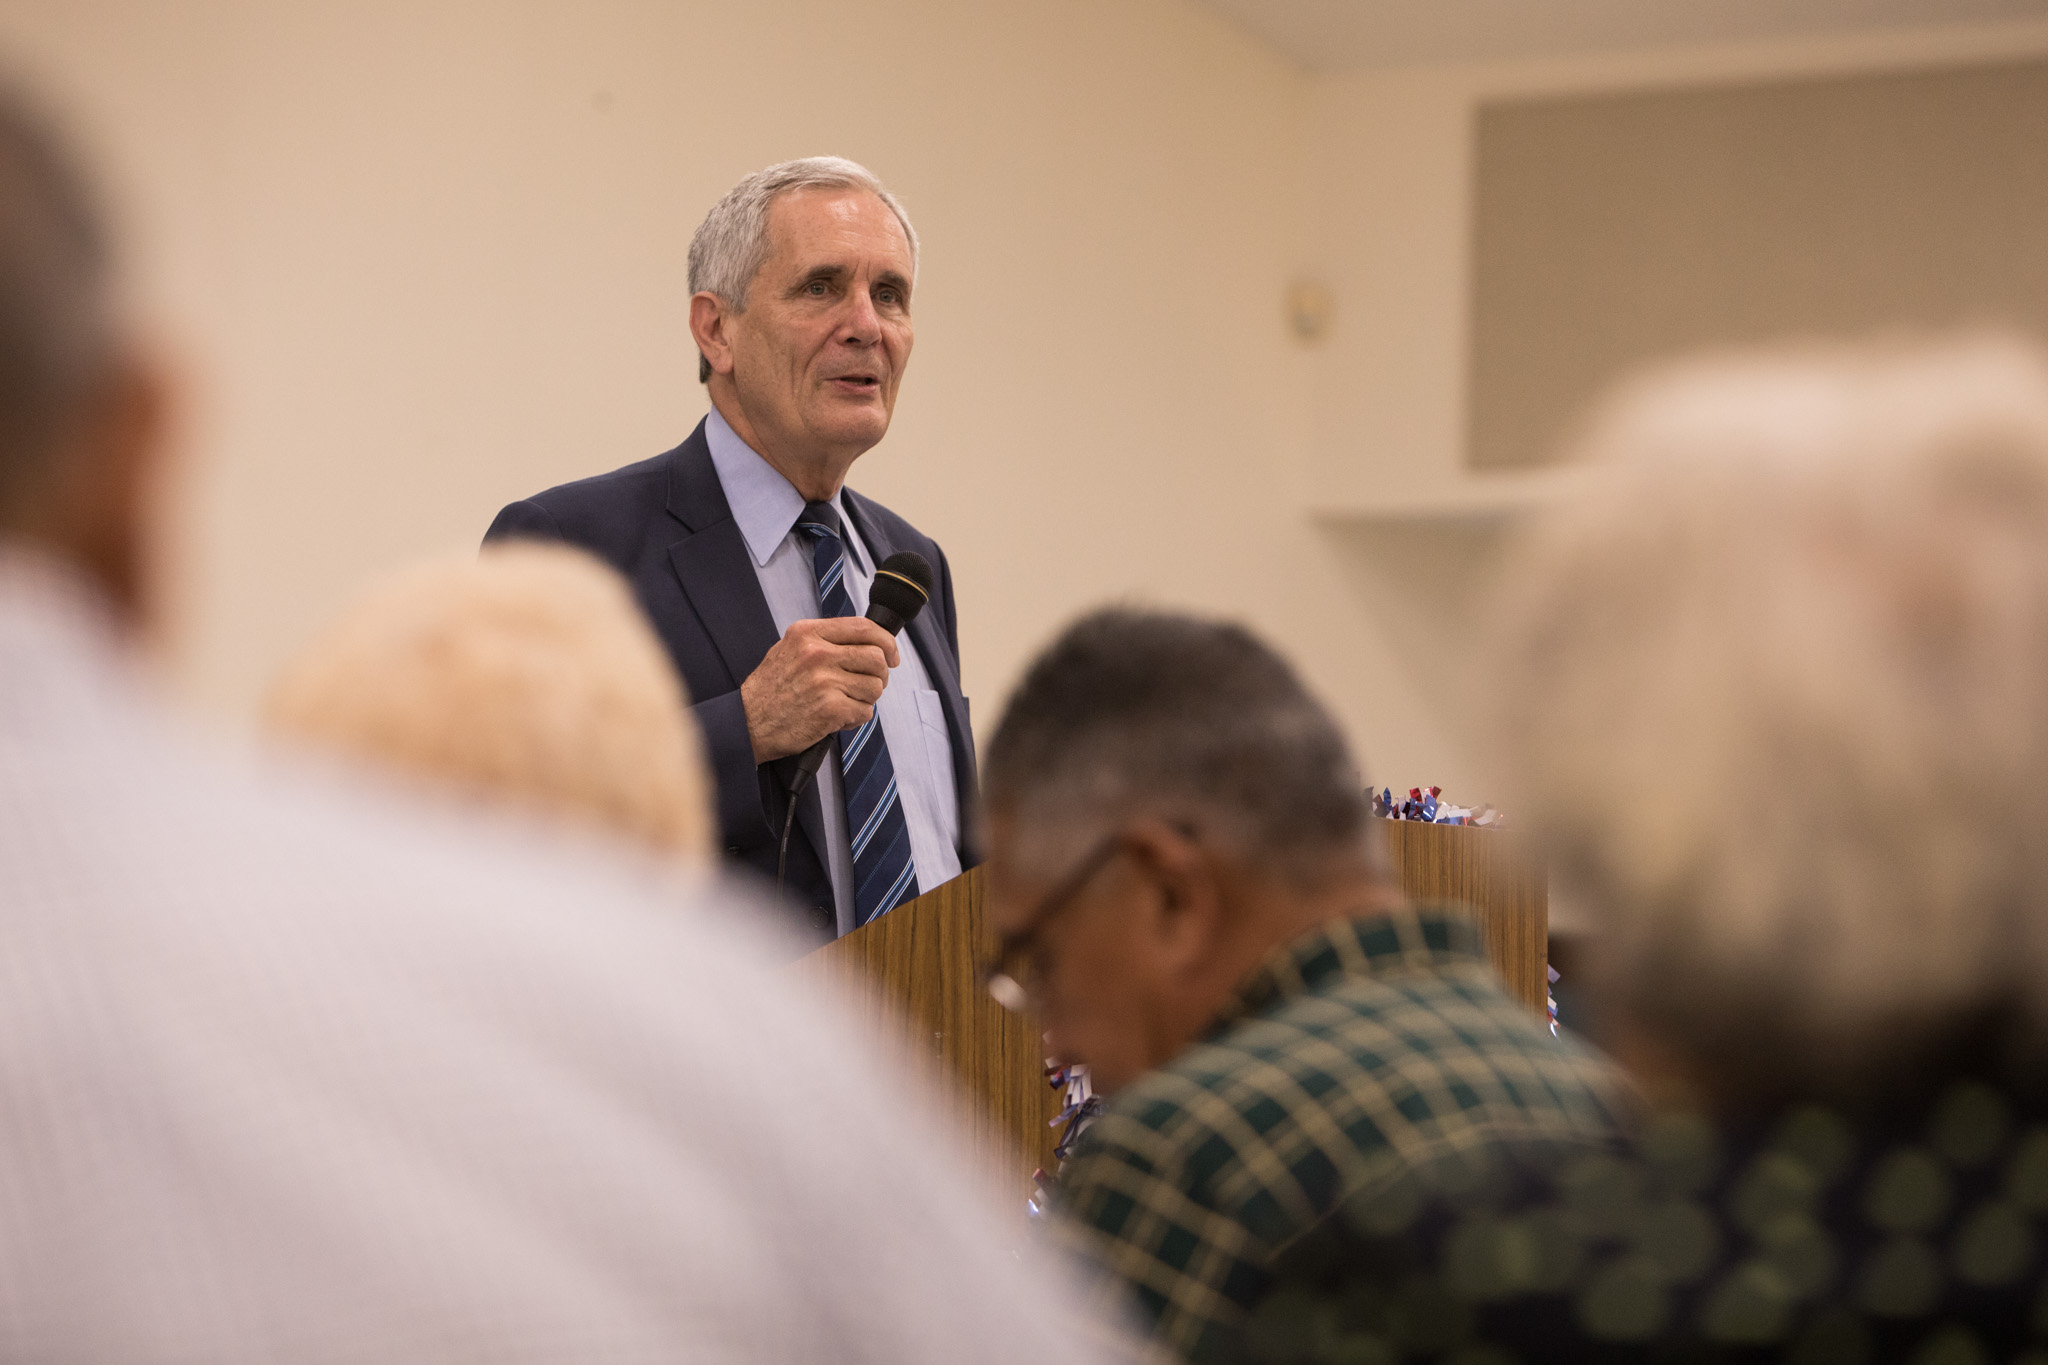 U.S. Rep Lloyd Doggett (D-Texas) addresses the audience at a town hall meeting with the Government Hill Alliance Neighborhood Association at St. Patrick Catholic Church.